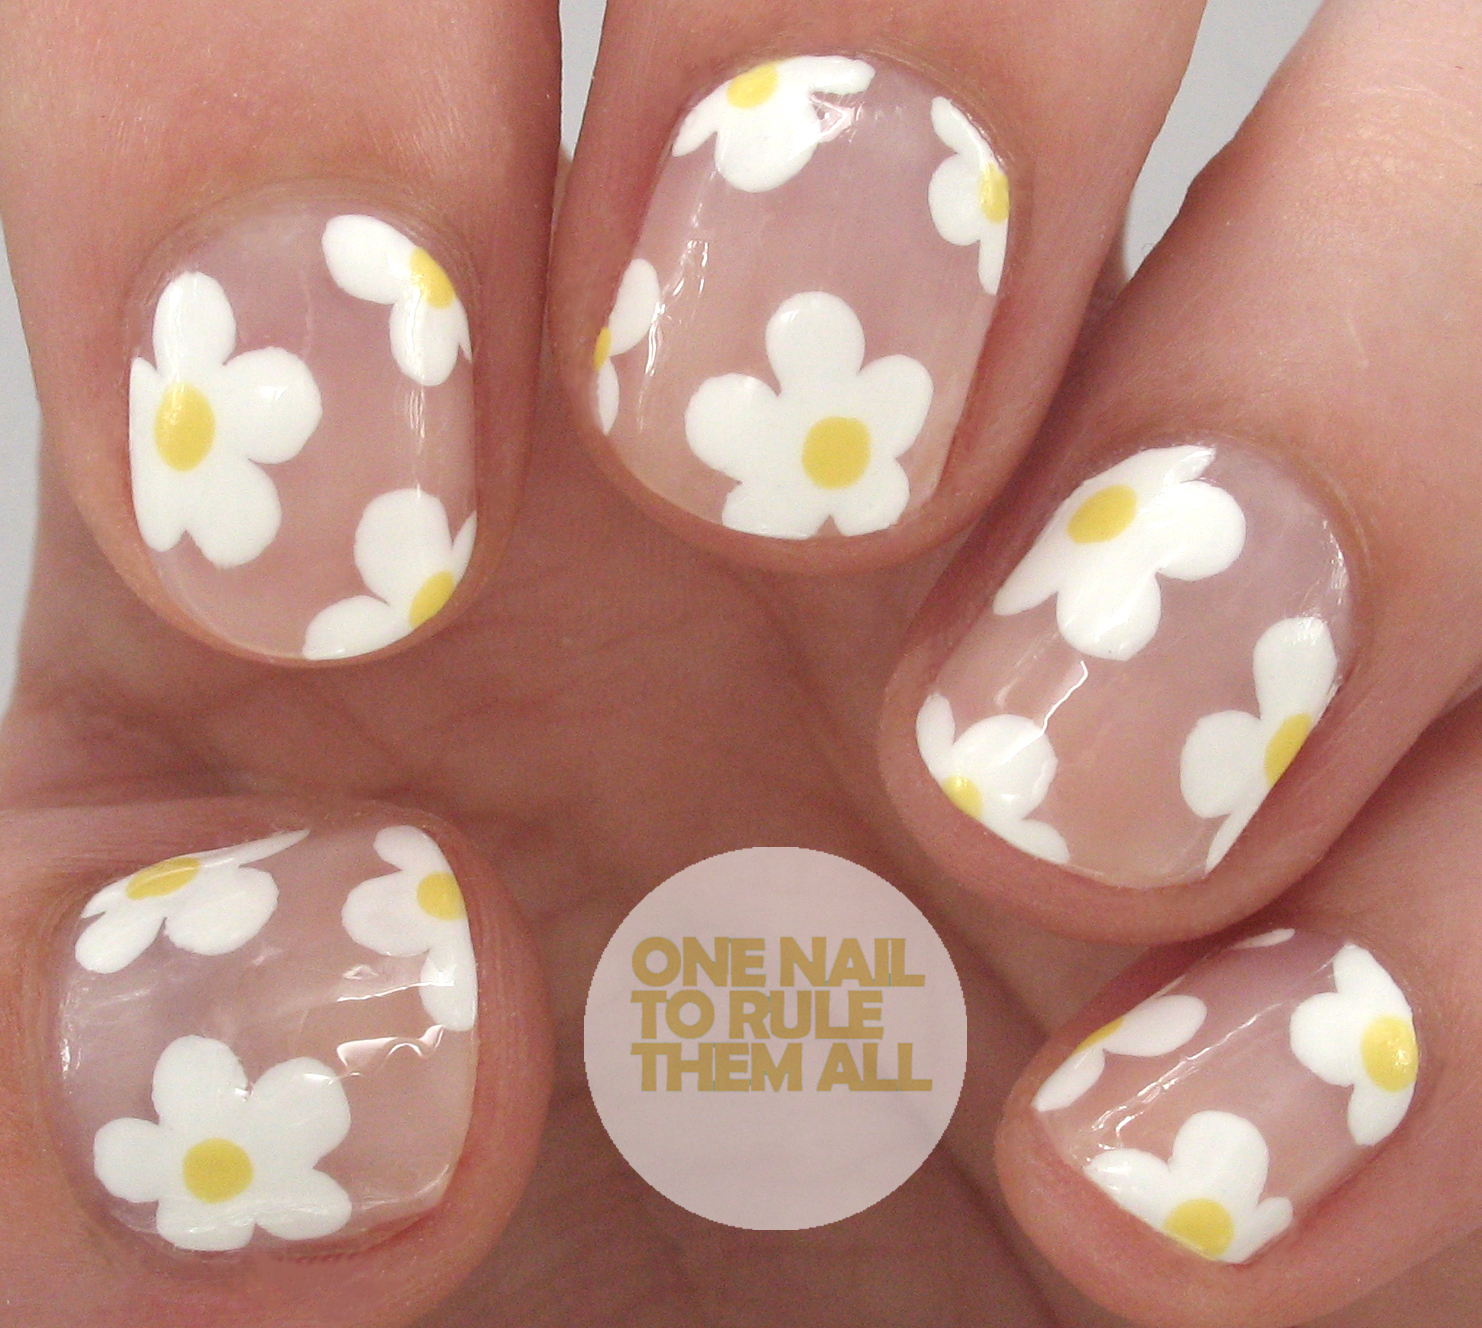 One nail to rule them all negative space daisy nail art for these i used one coat of sally hansen shell we dance as a base and then i used a nail art brush and barry m cotton for the flowers prinsesfo Gallery